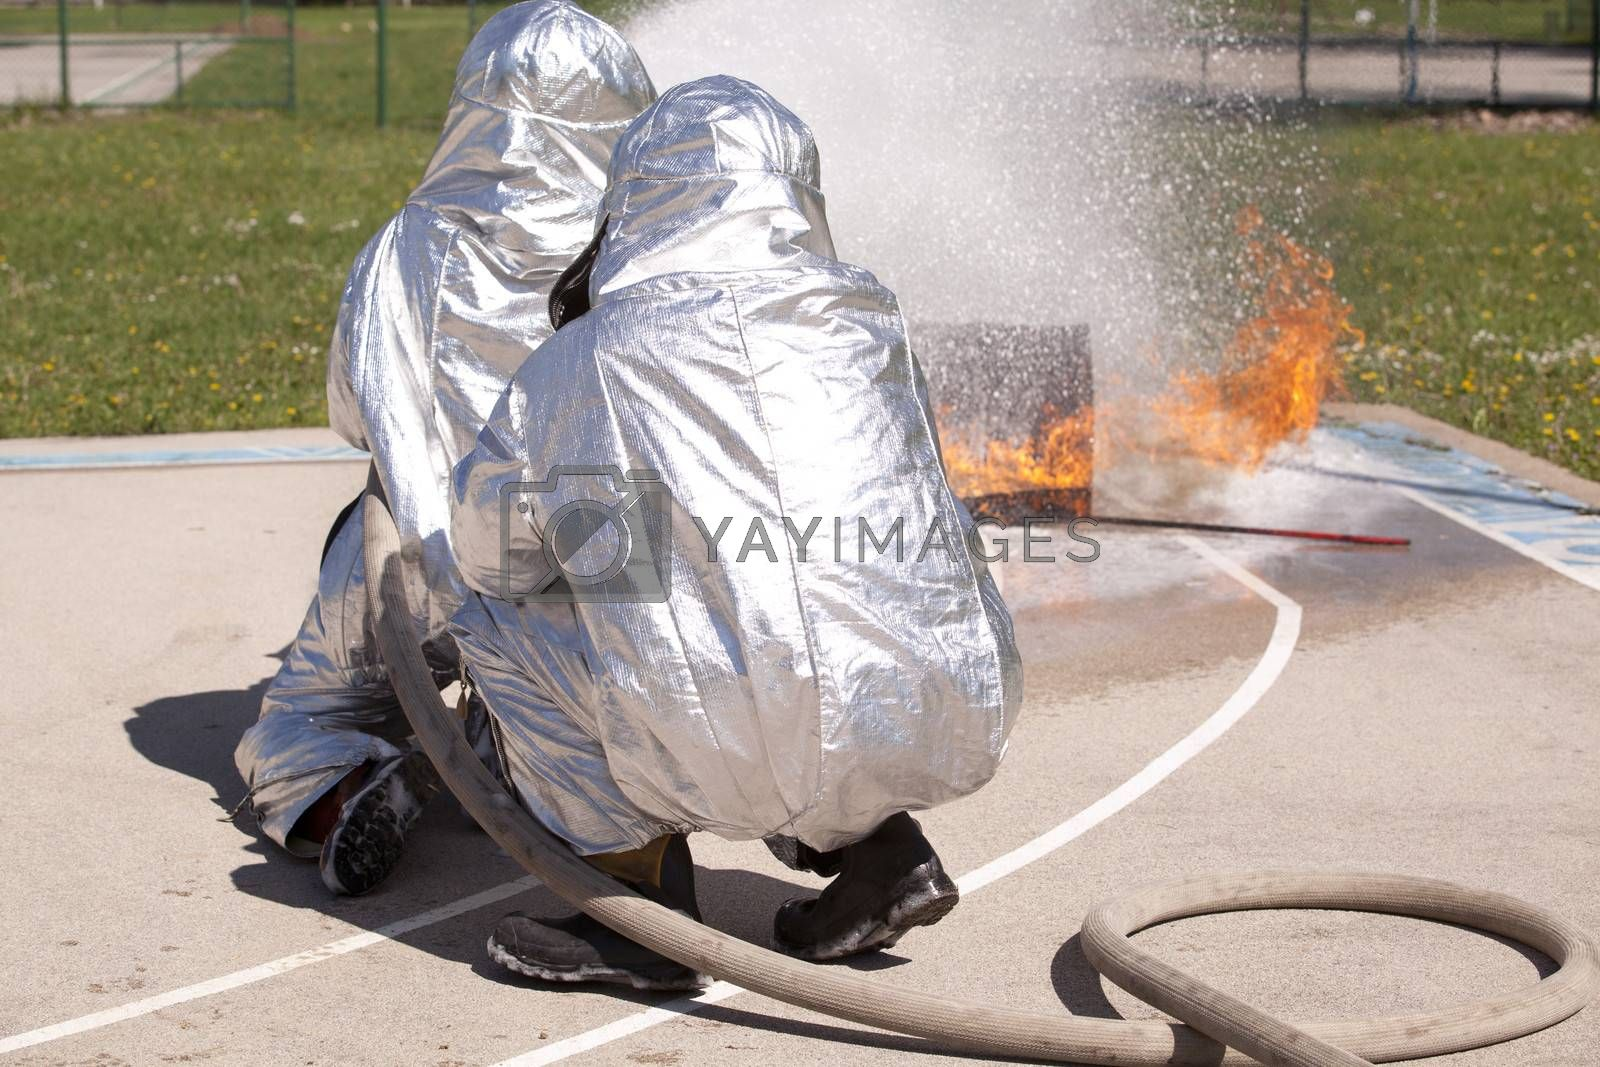 Royalty free image of Firefighter training by wellphoto